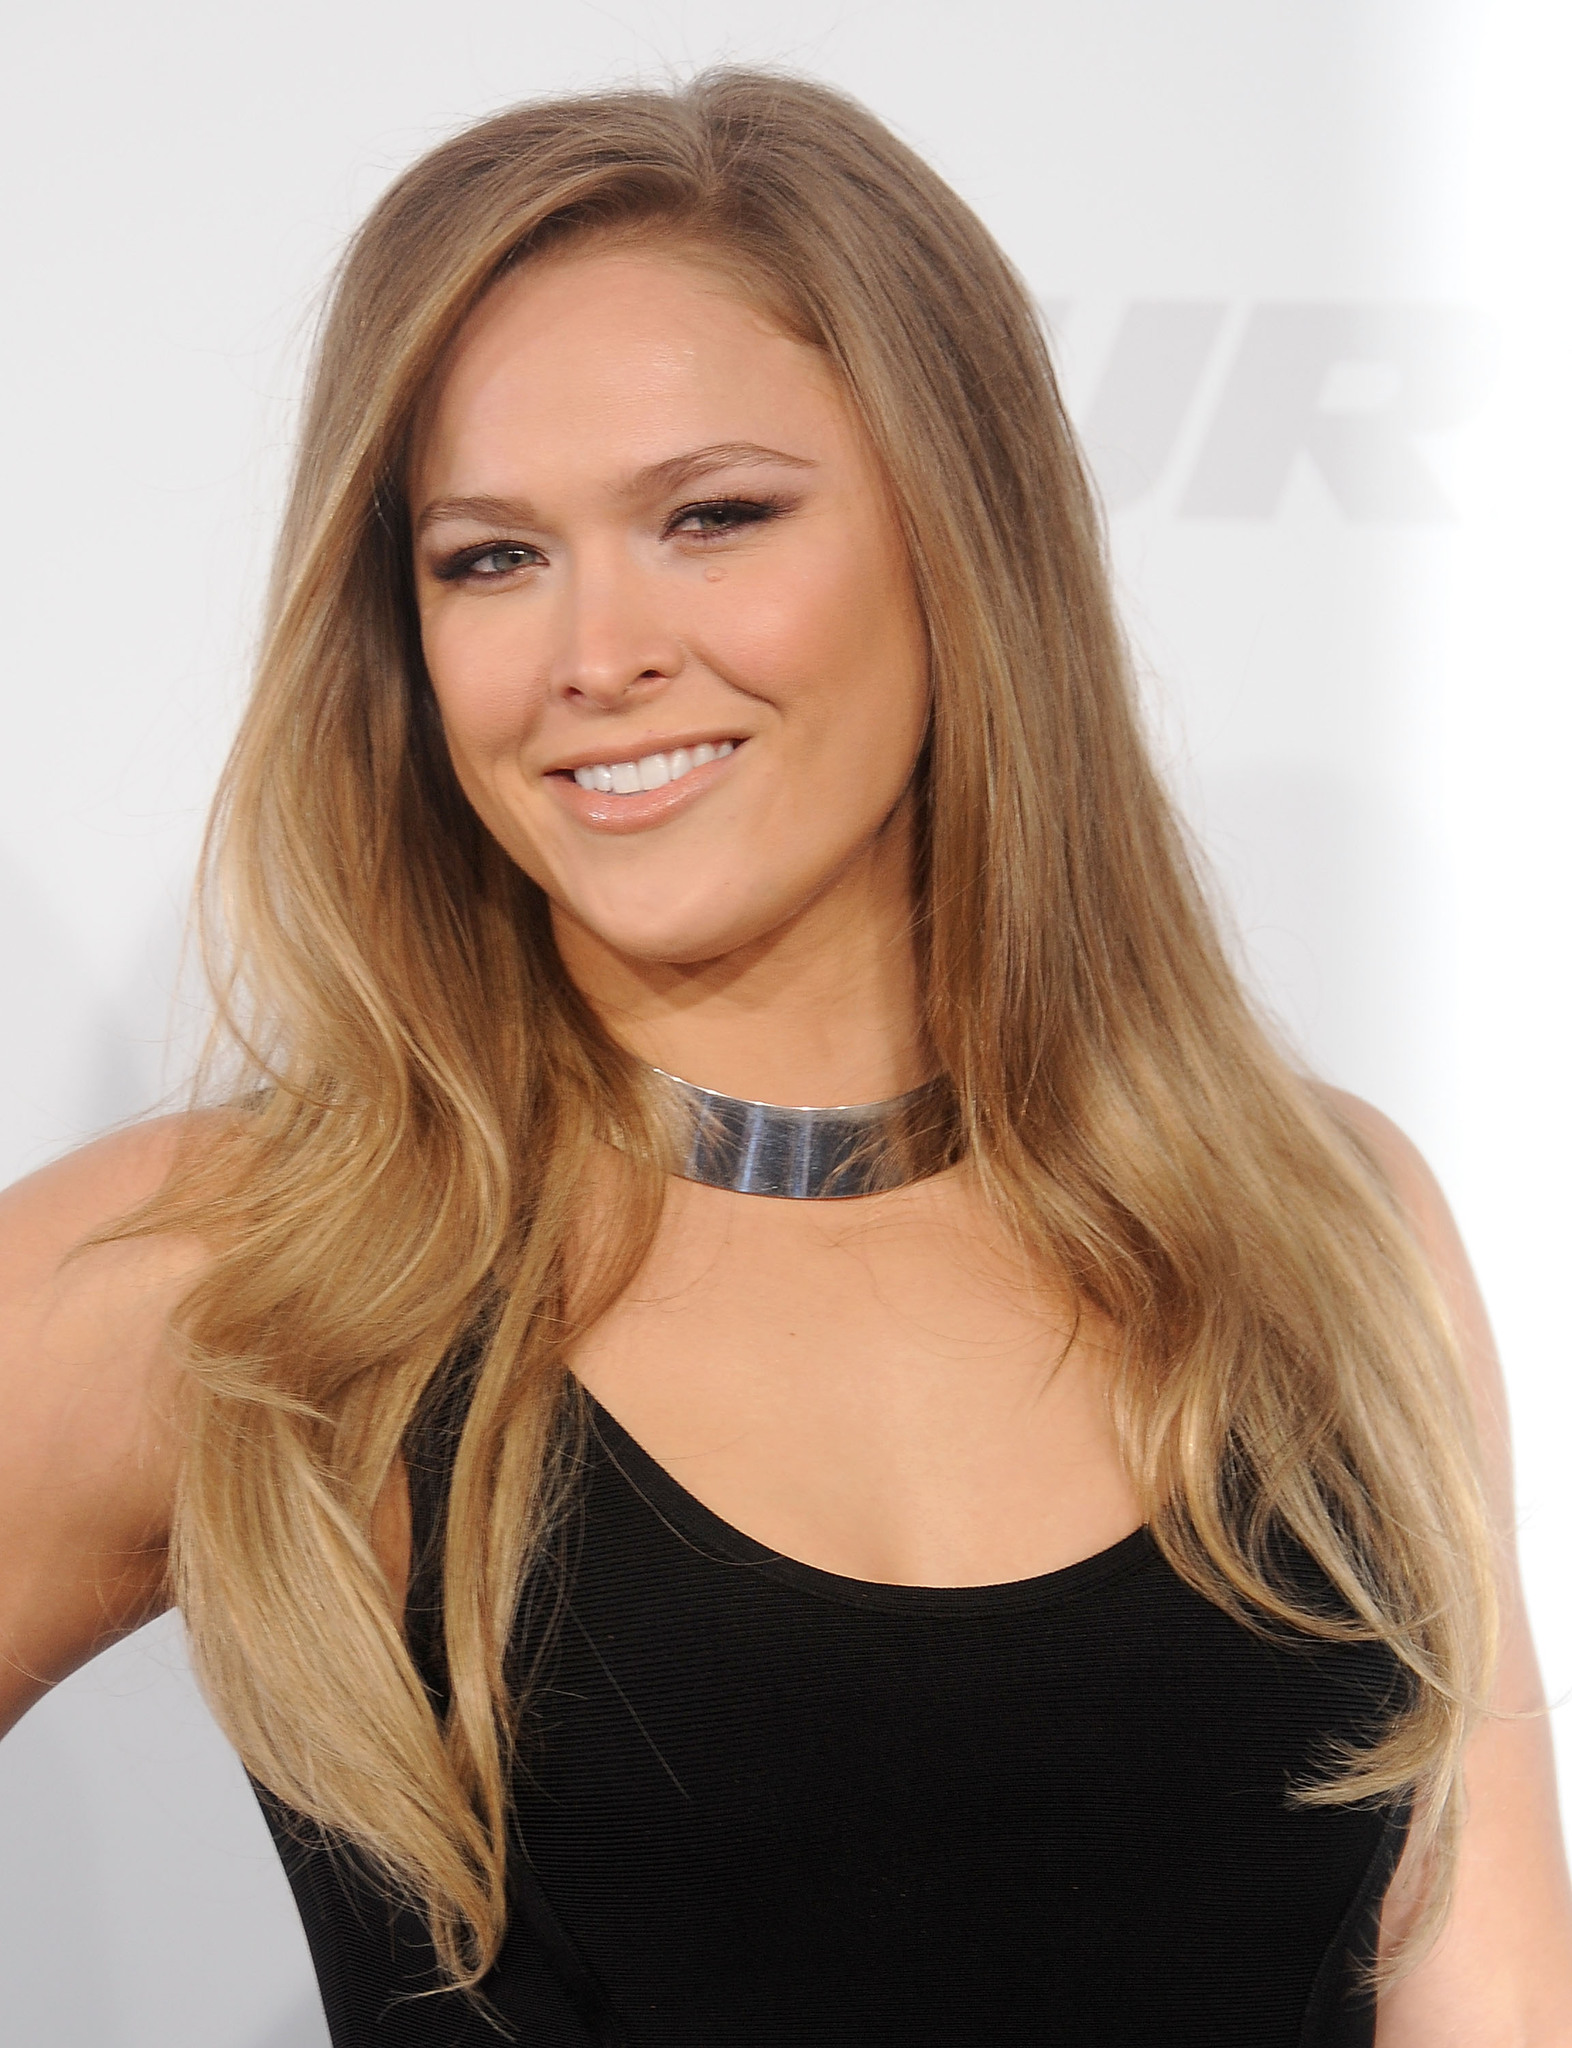 Watch Ronda Rousey video